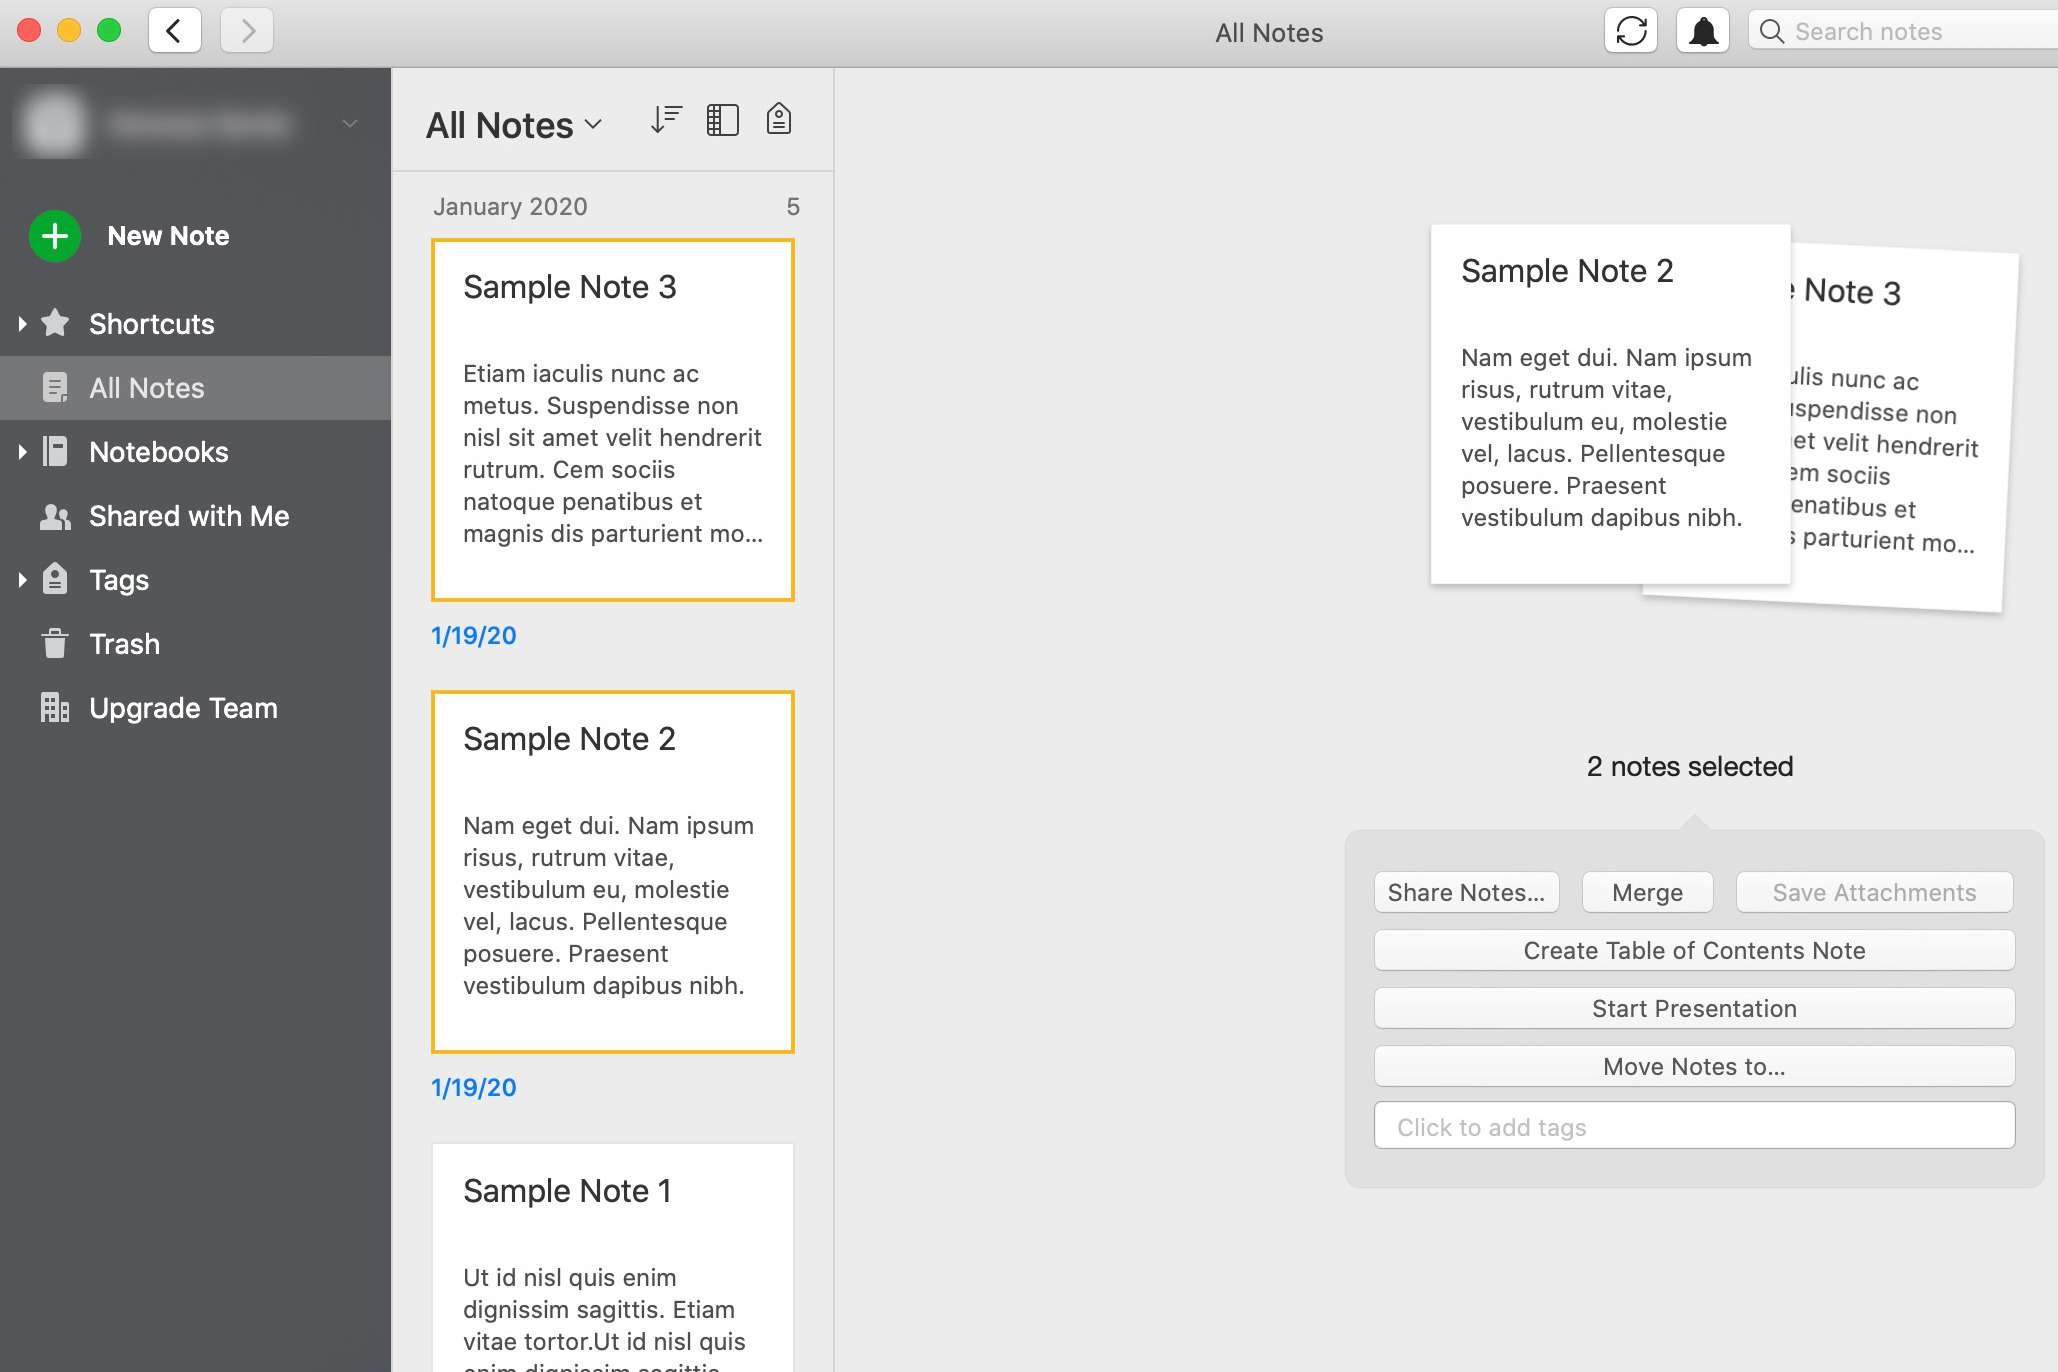 Merging two notes in Evernote